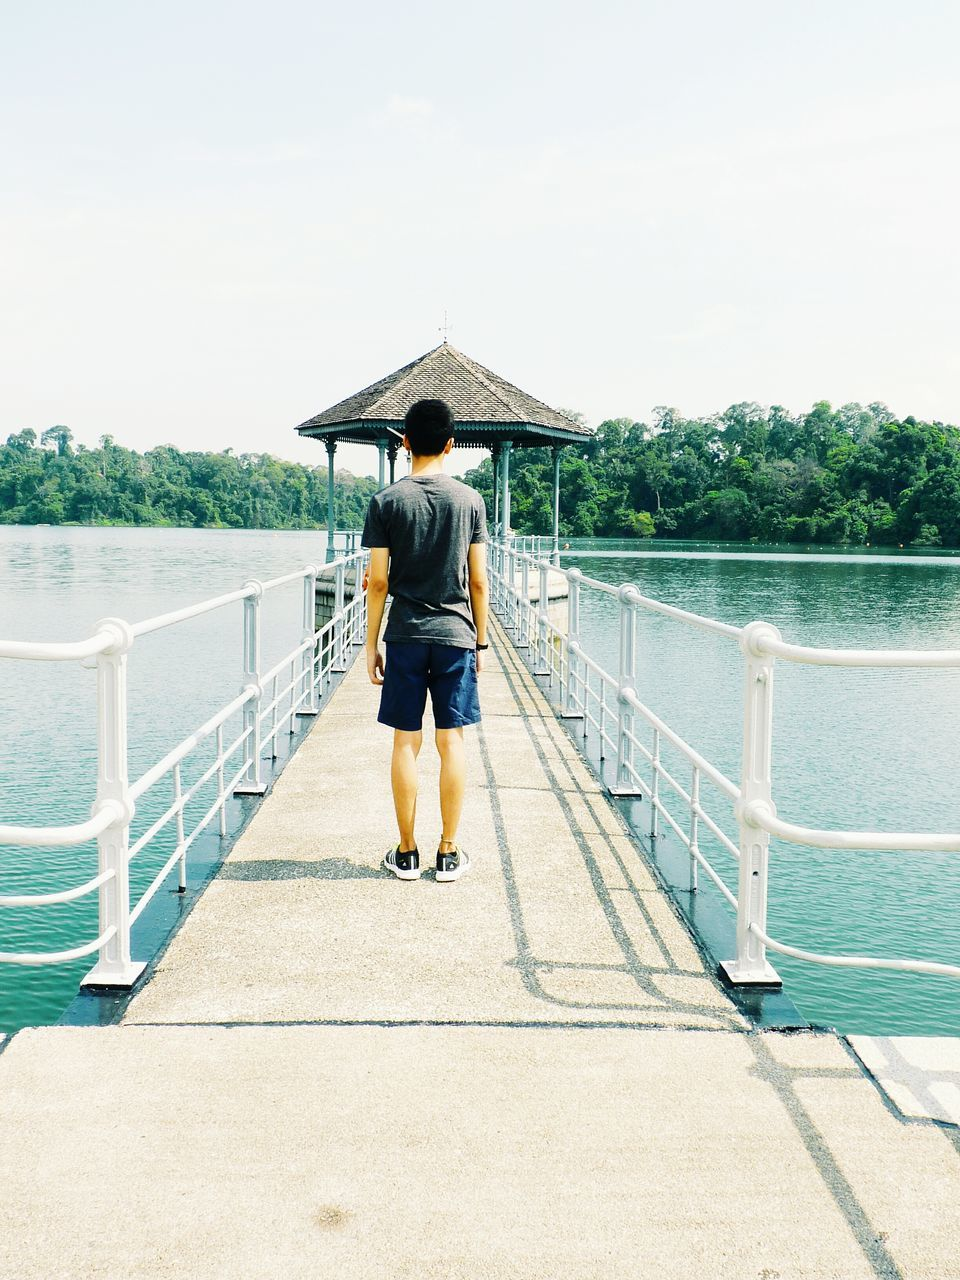 Full Length Rear View Of Boy Standing On Pier Over Lake